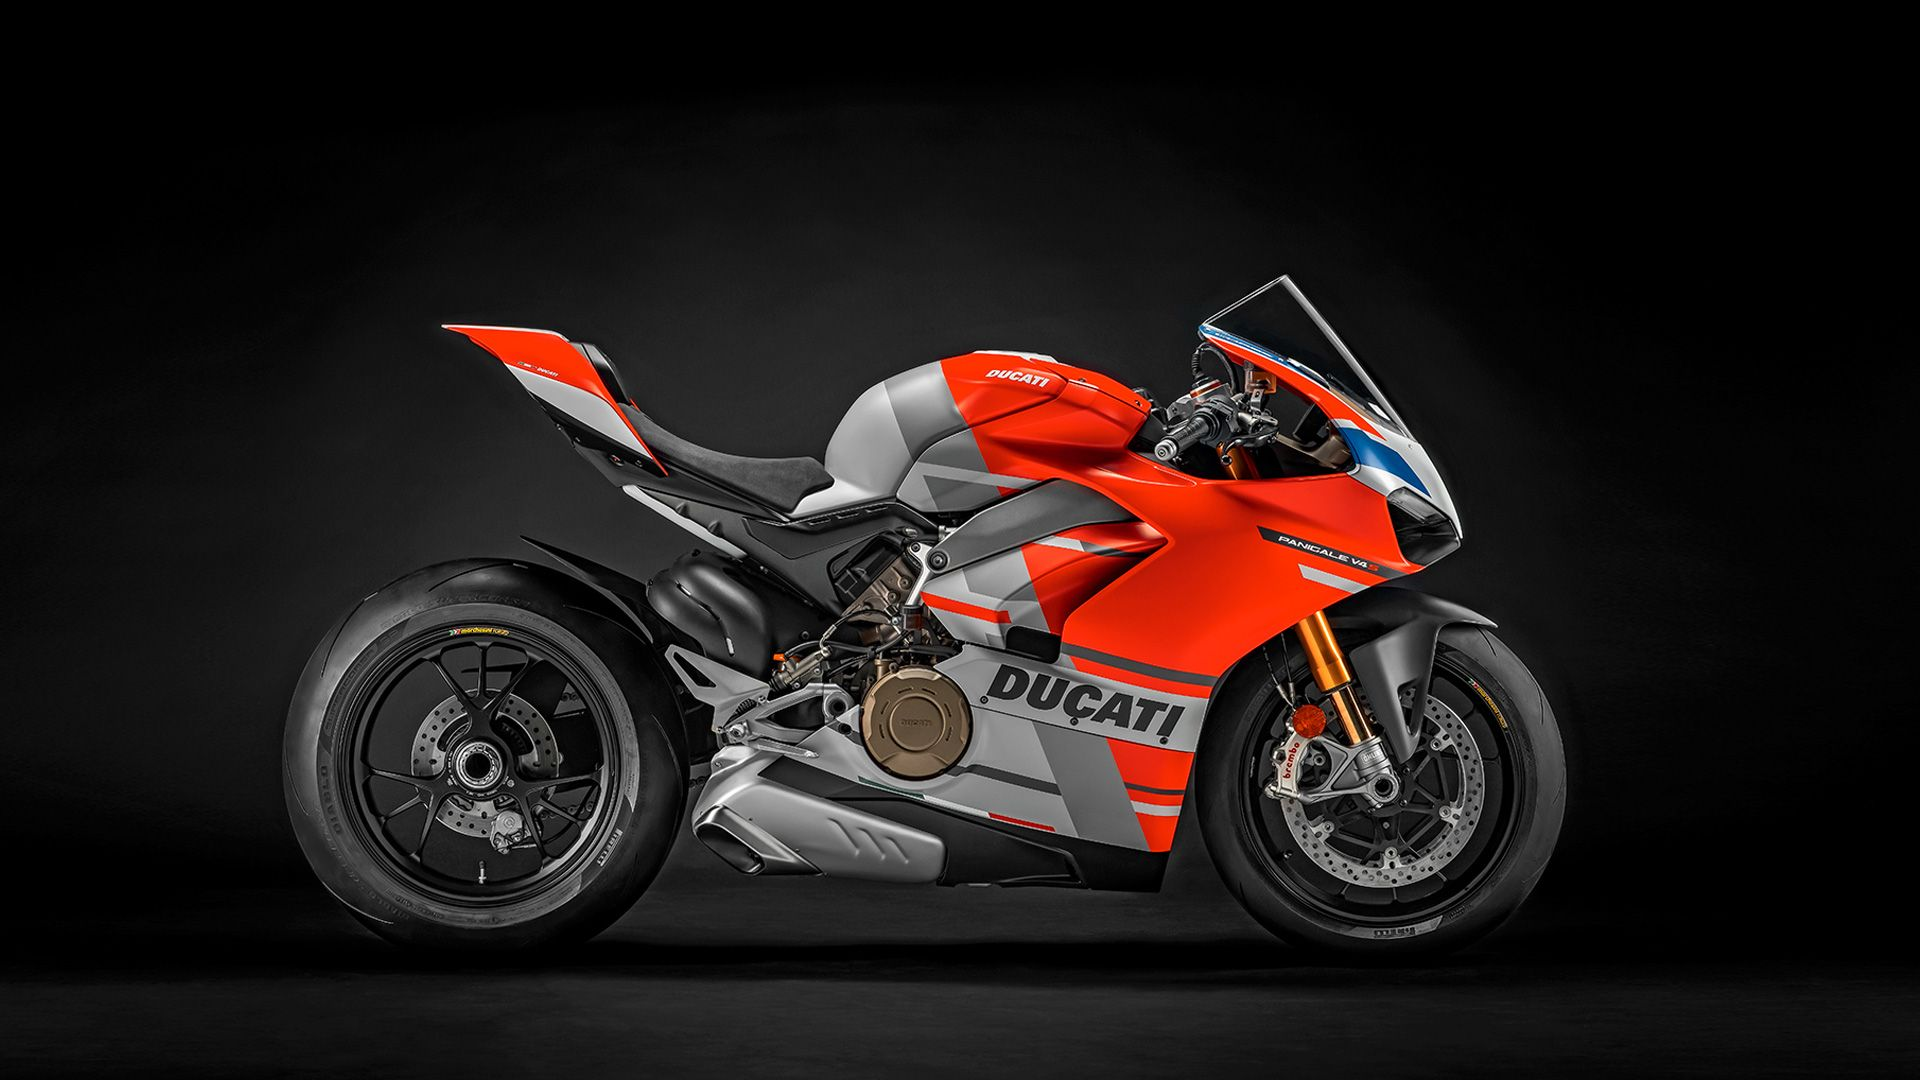 Ducati Panigale V4 2020 The Science Of Speed Ducati Panigale Panigale Ducati Motorcycles